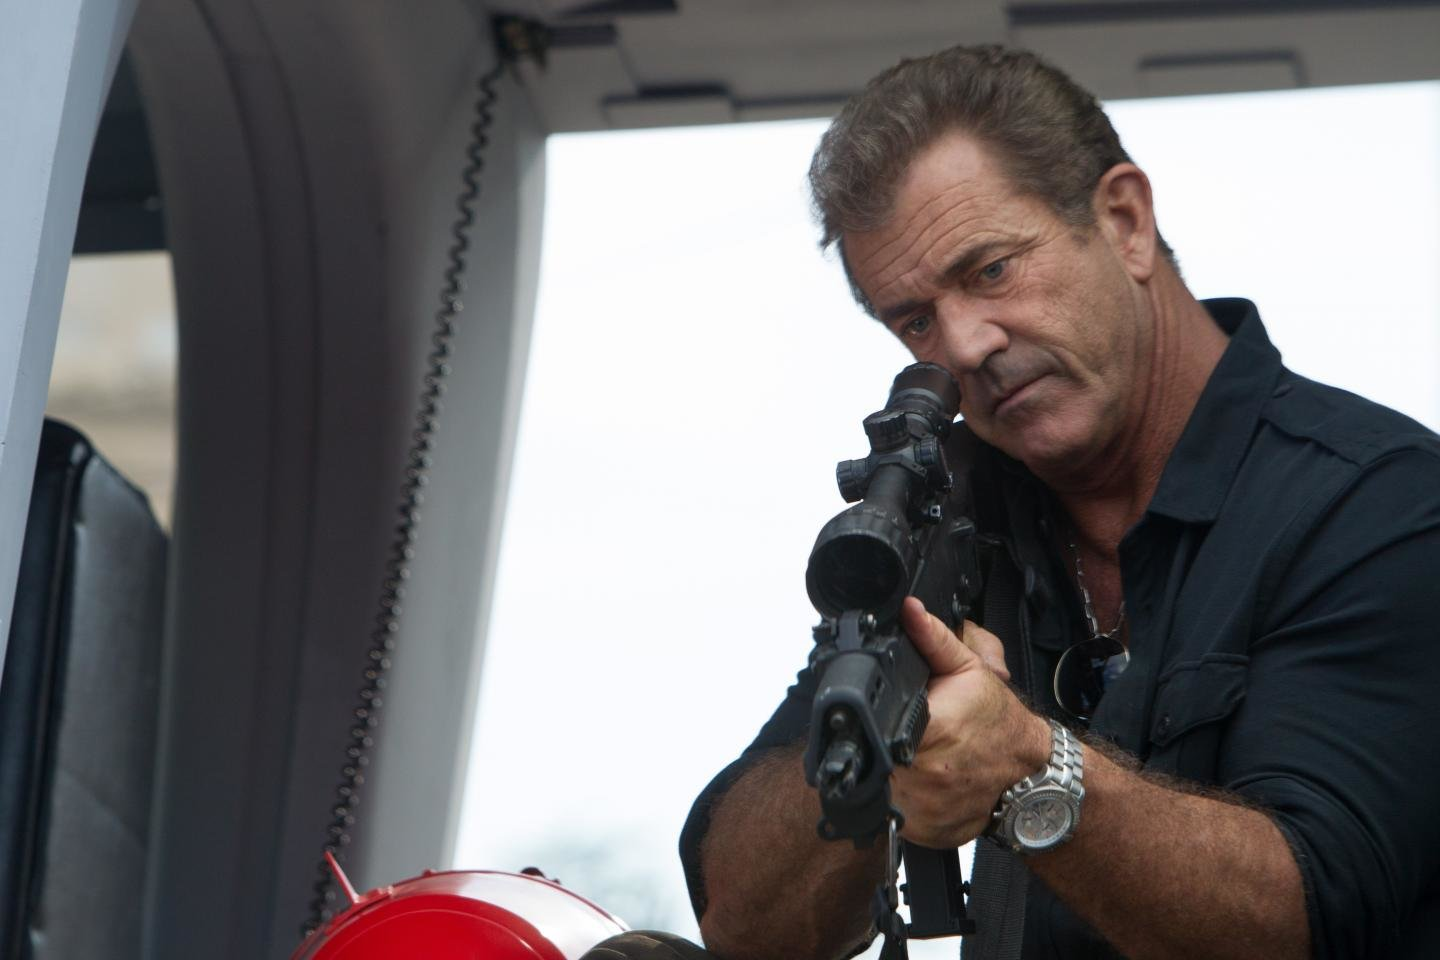 Download hd 1440x960 Mel Gibson PC background ID:10060 for free